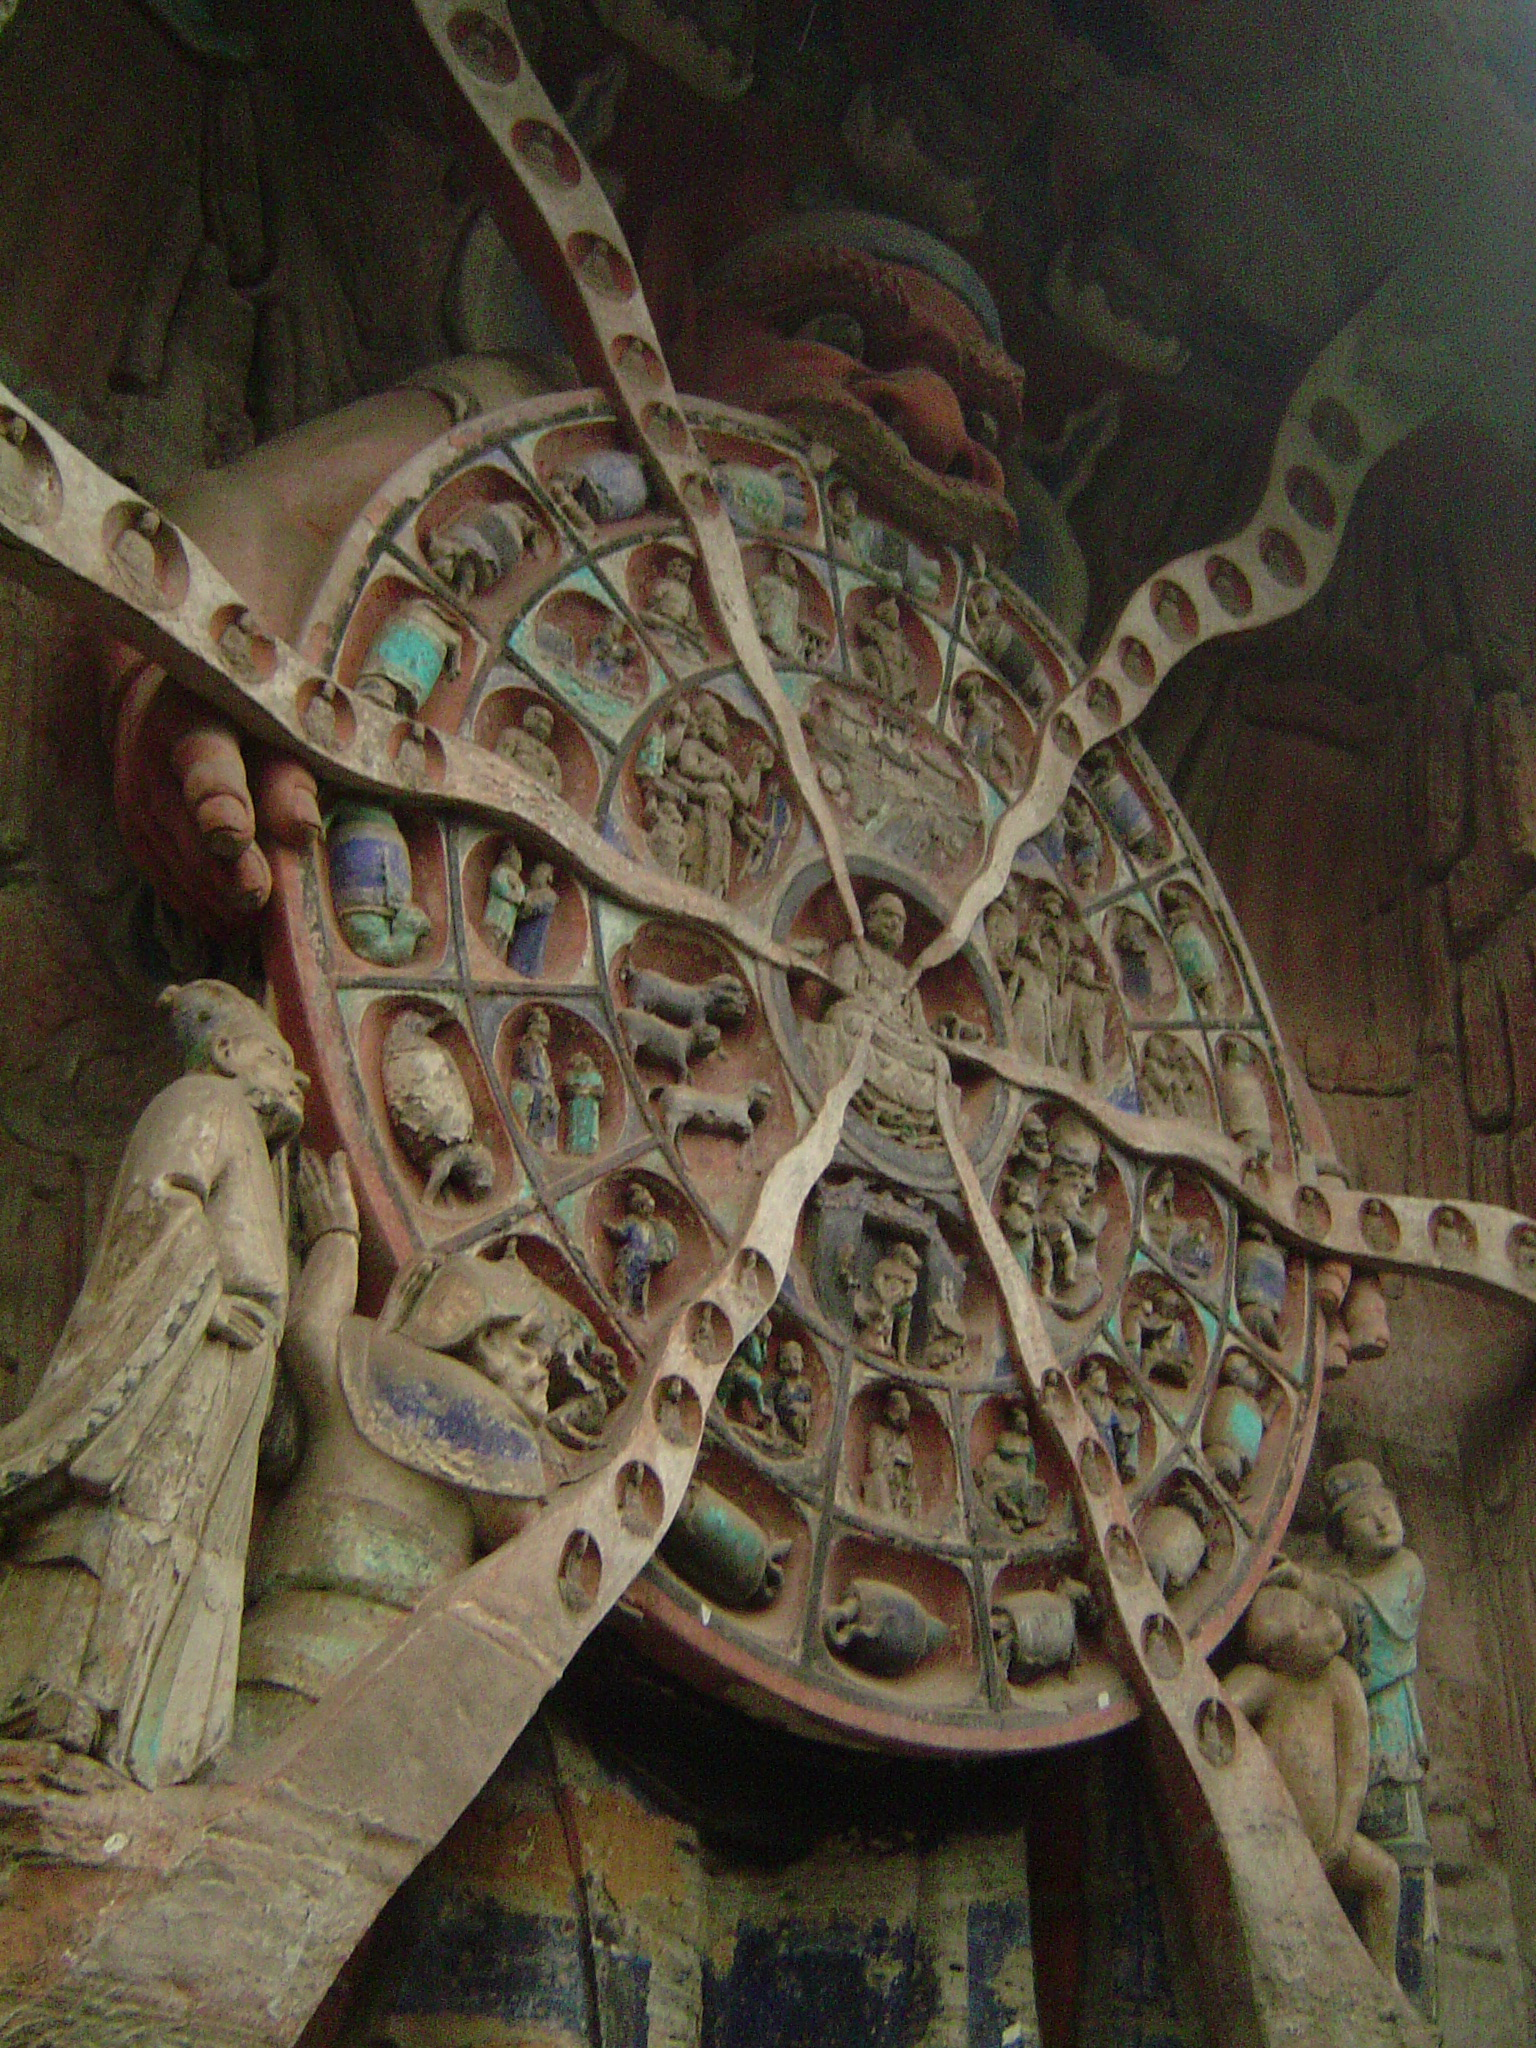 File:Dazu Wheel of Reincarnation.JPG - Wikimedia Commons